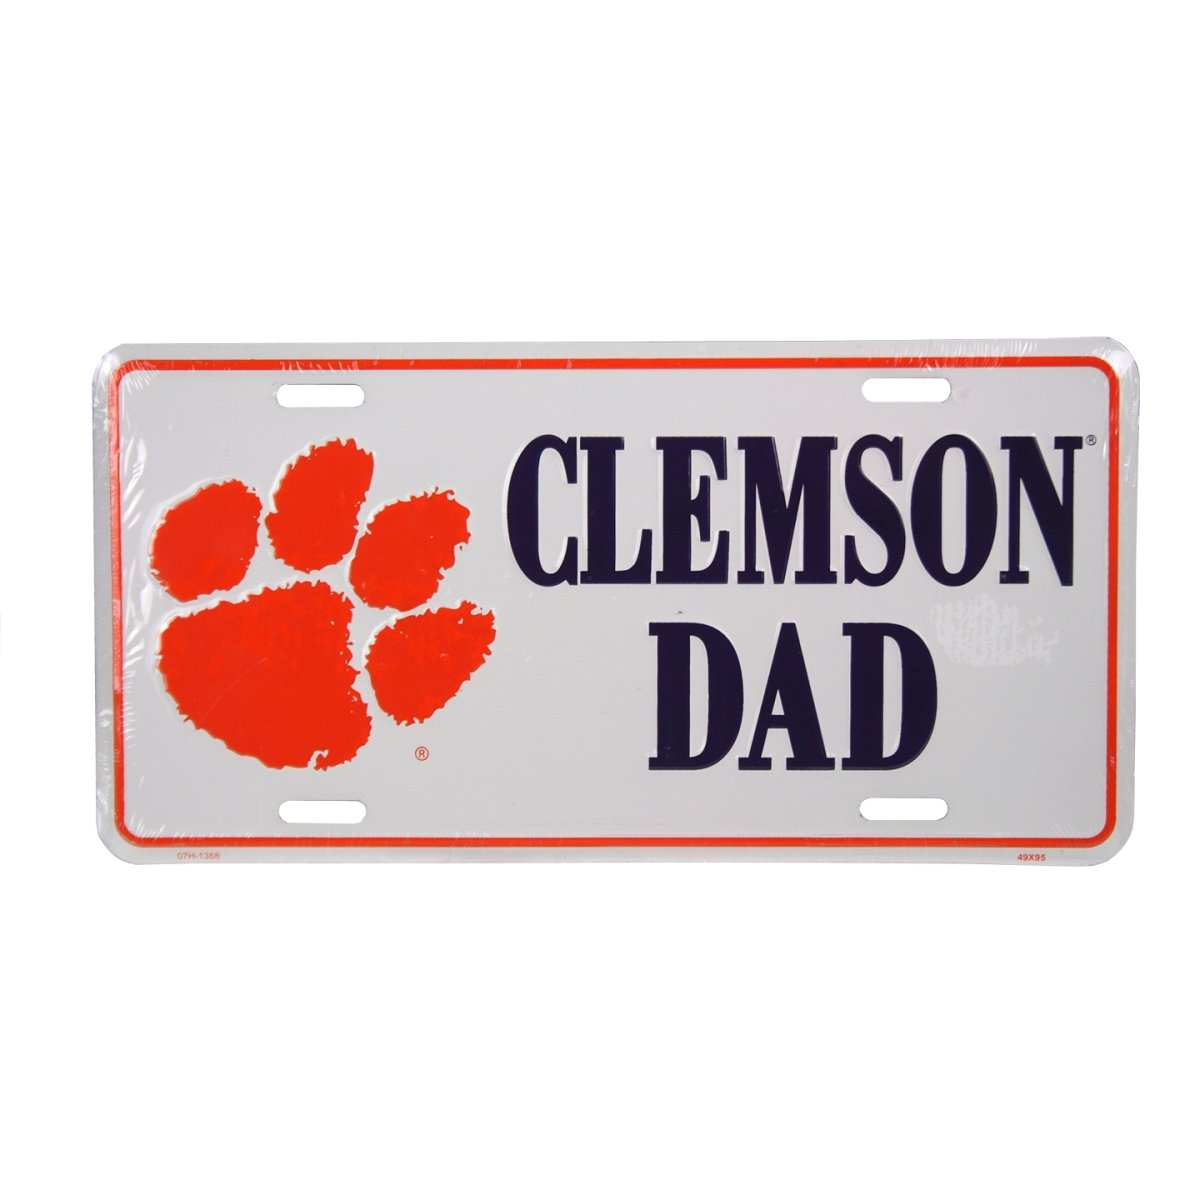 White Car Tag-purple Clemson Dad/orange Paw - Mr. Knickerbocker